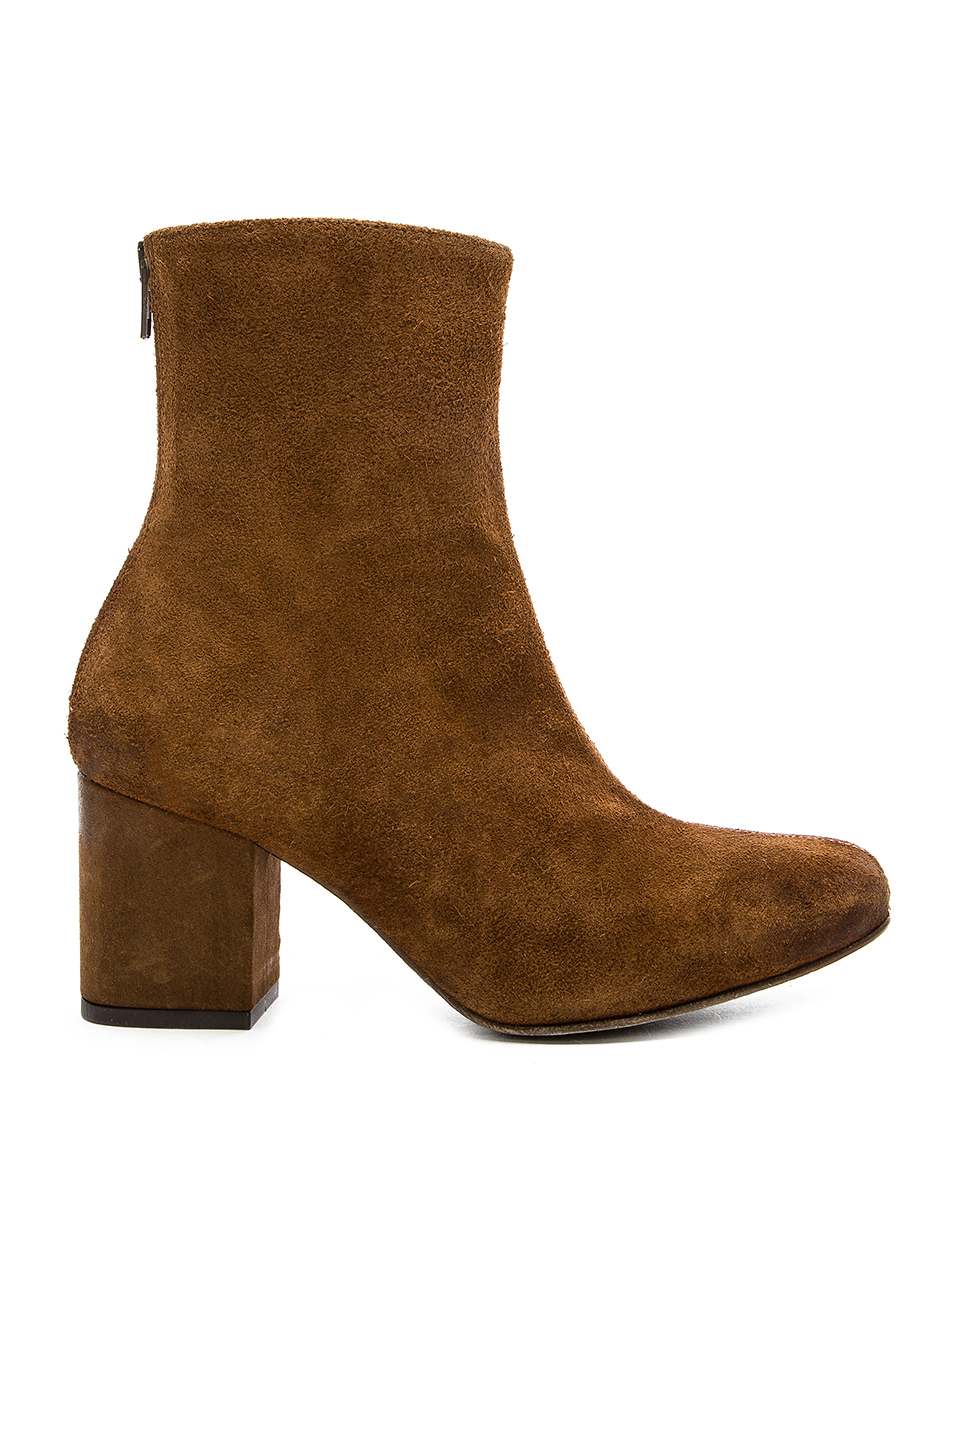 'Cecile' Block Heel Bootie (Women) in Brown